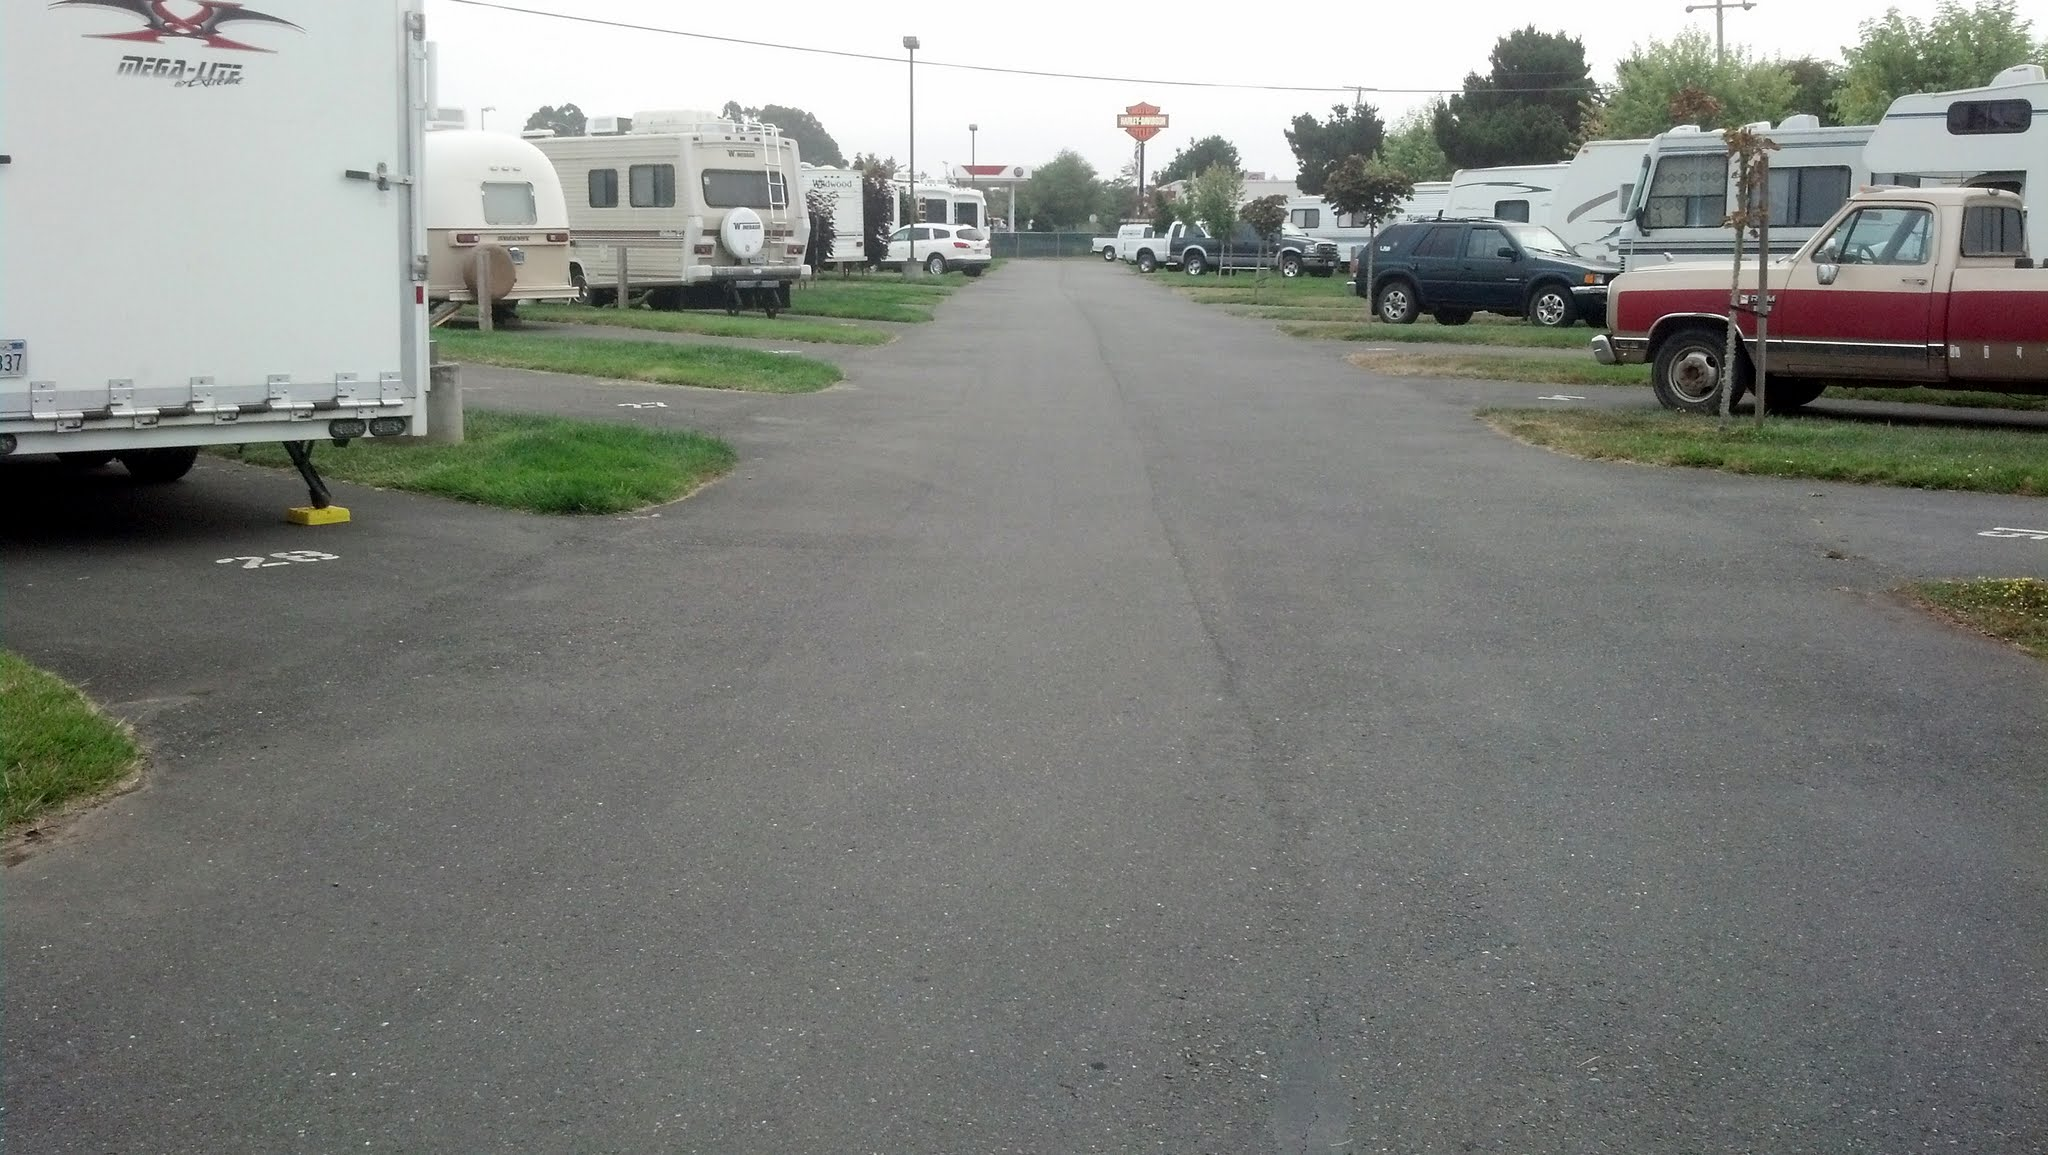 Shortstop Shoreline Rv Park Eureka Ca Here And There